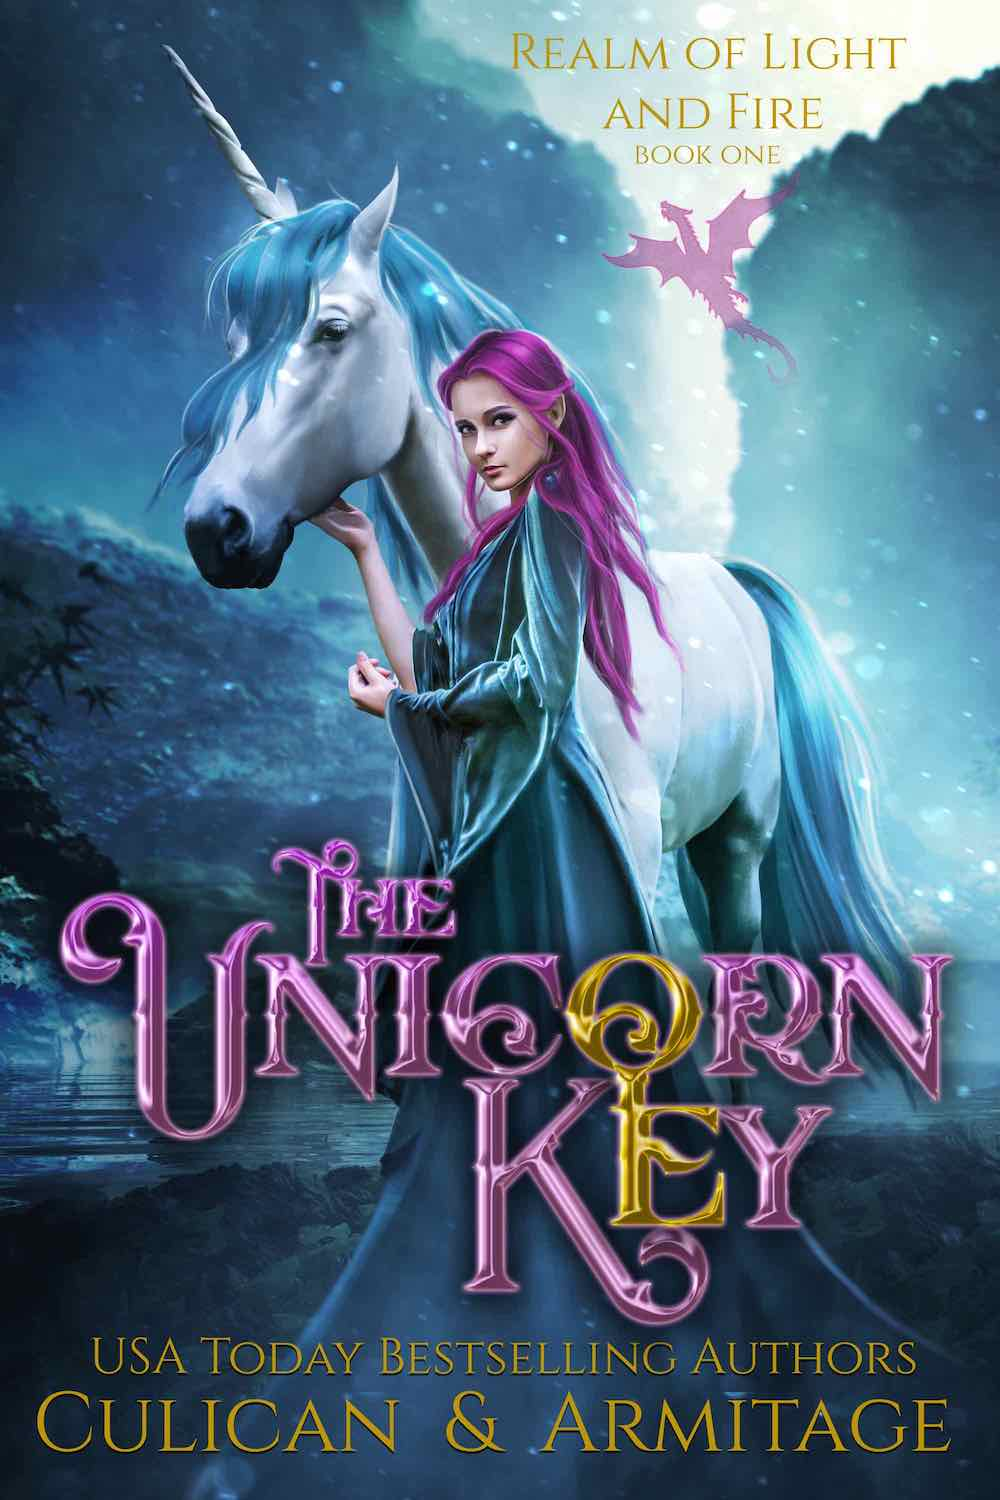 Real of Light and Fire - The Unicorn Key